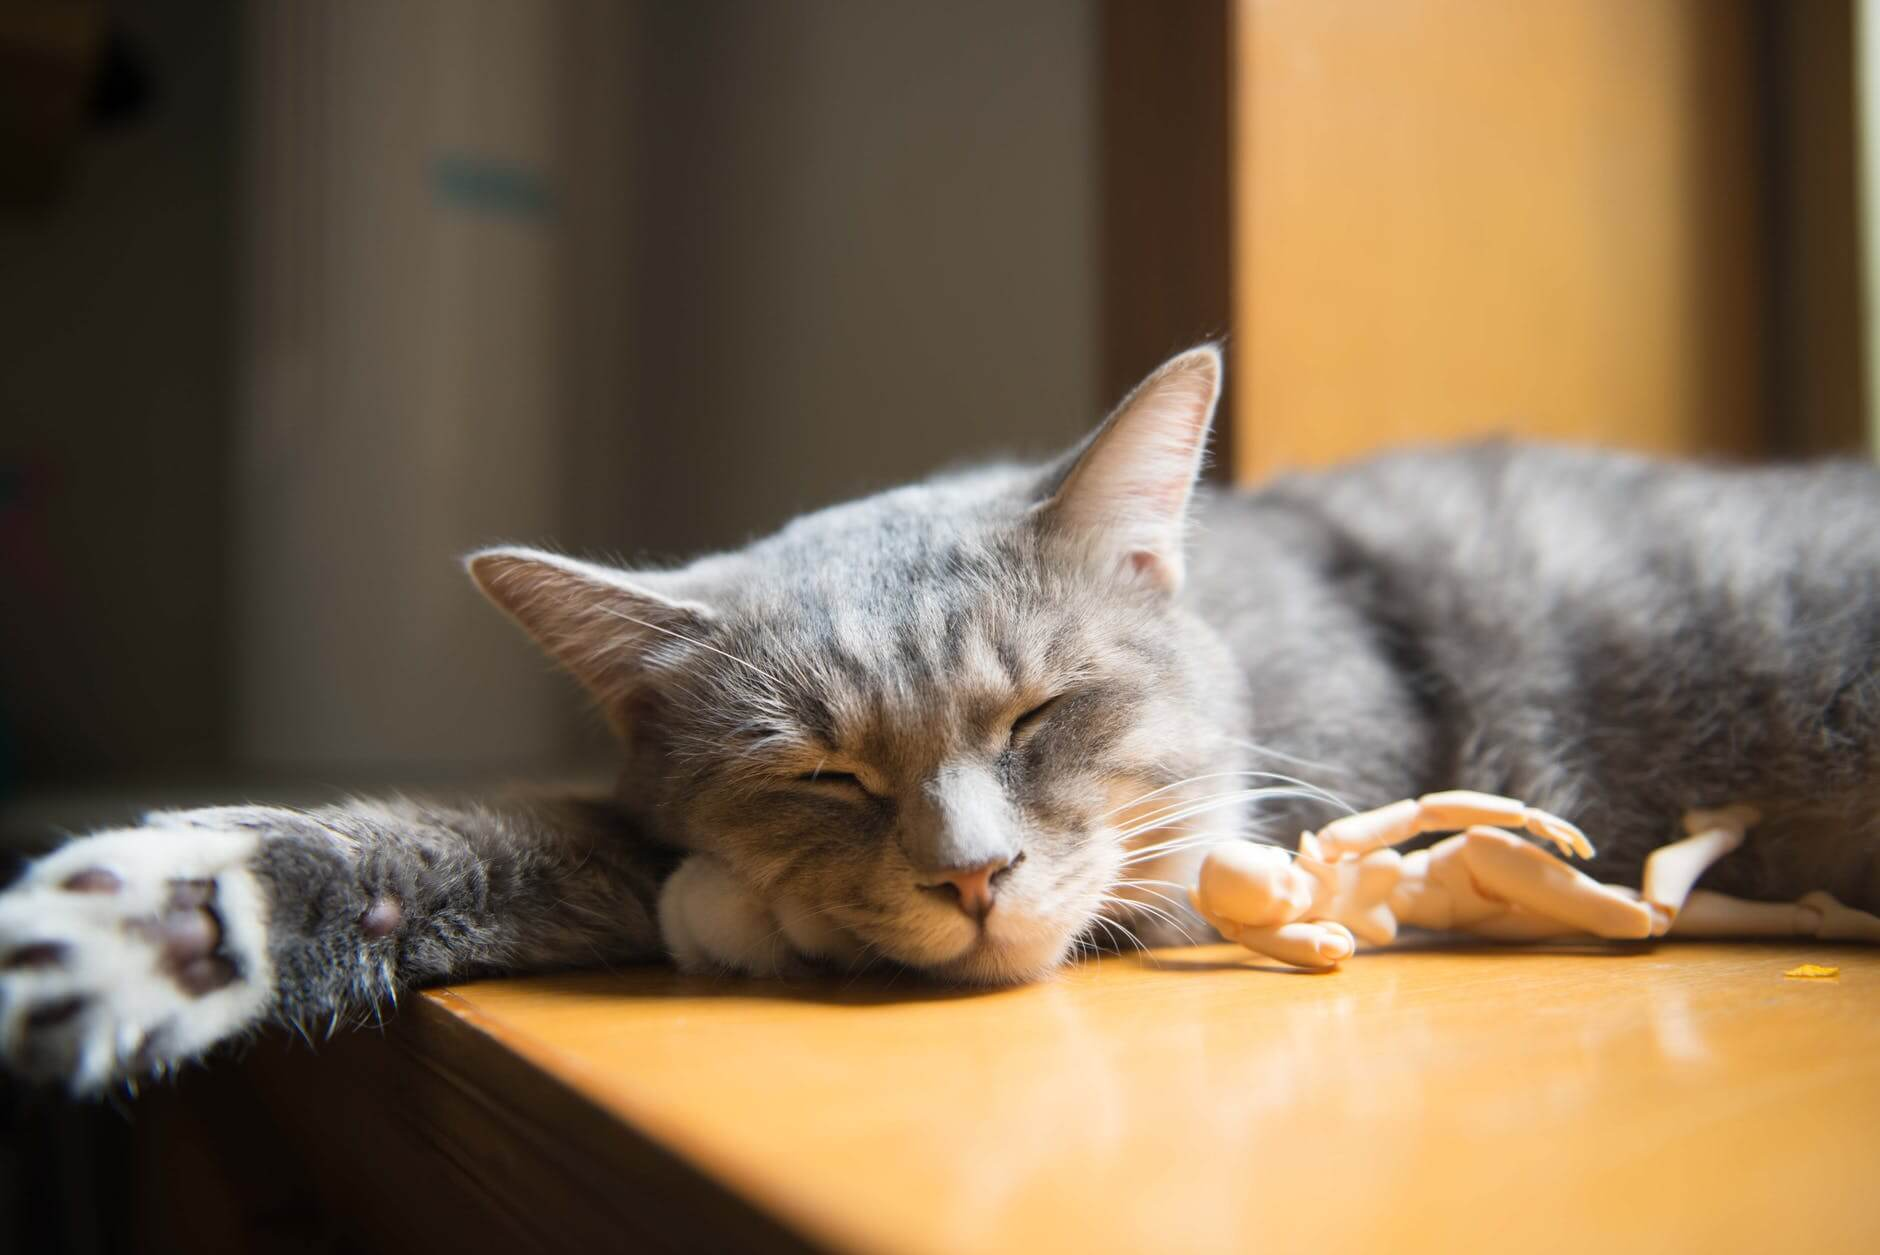 study tip - getting proper sleep really helps with learning